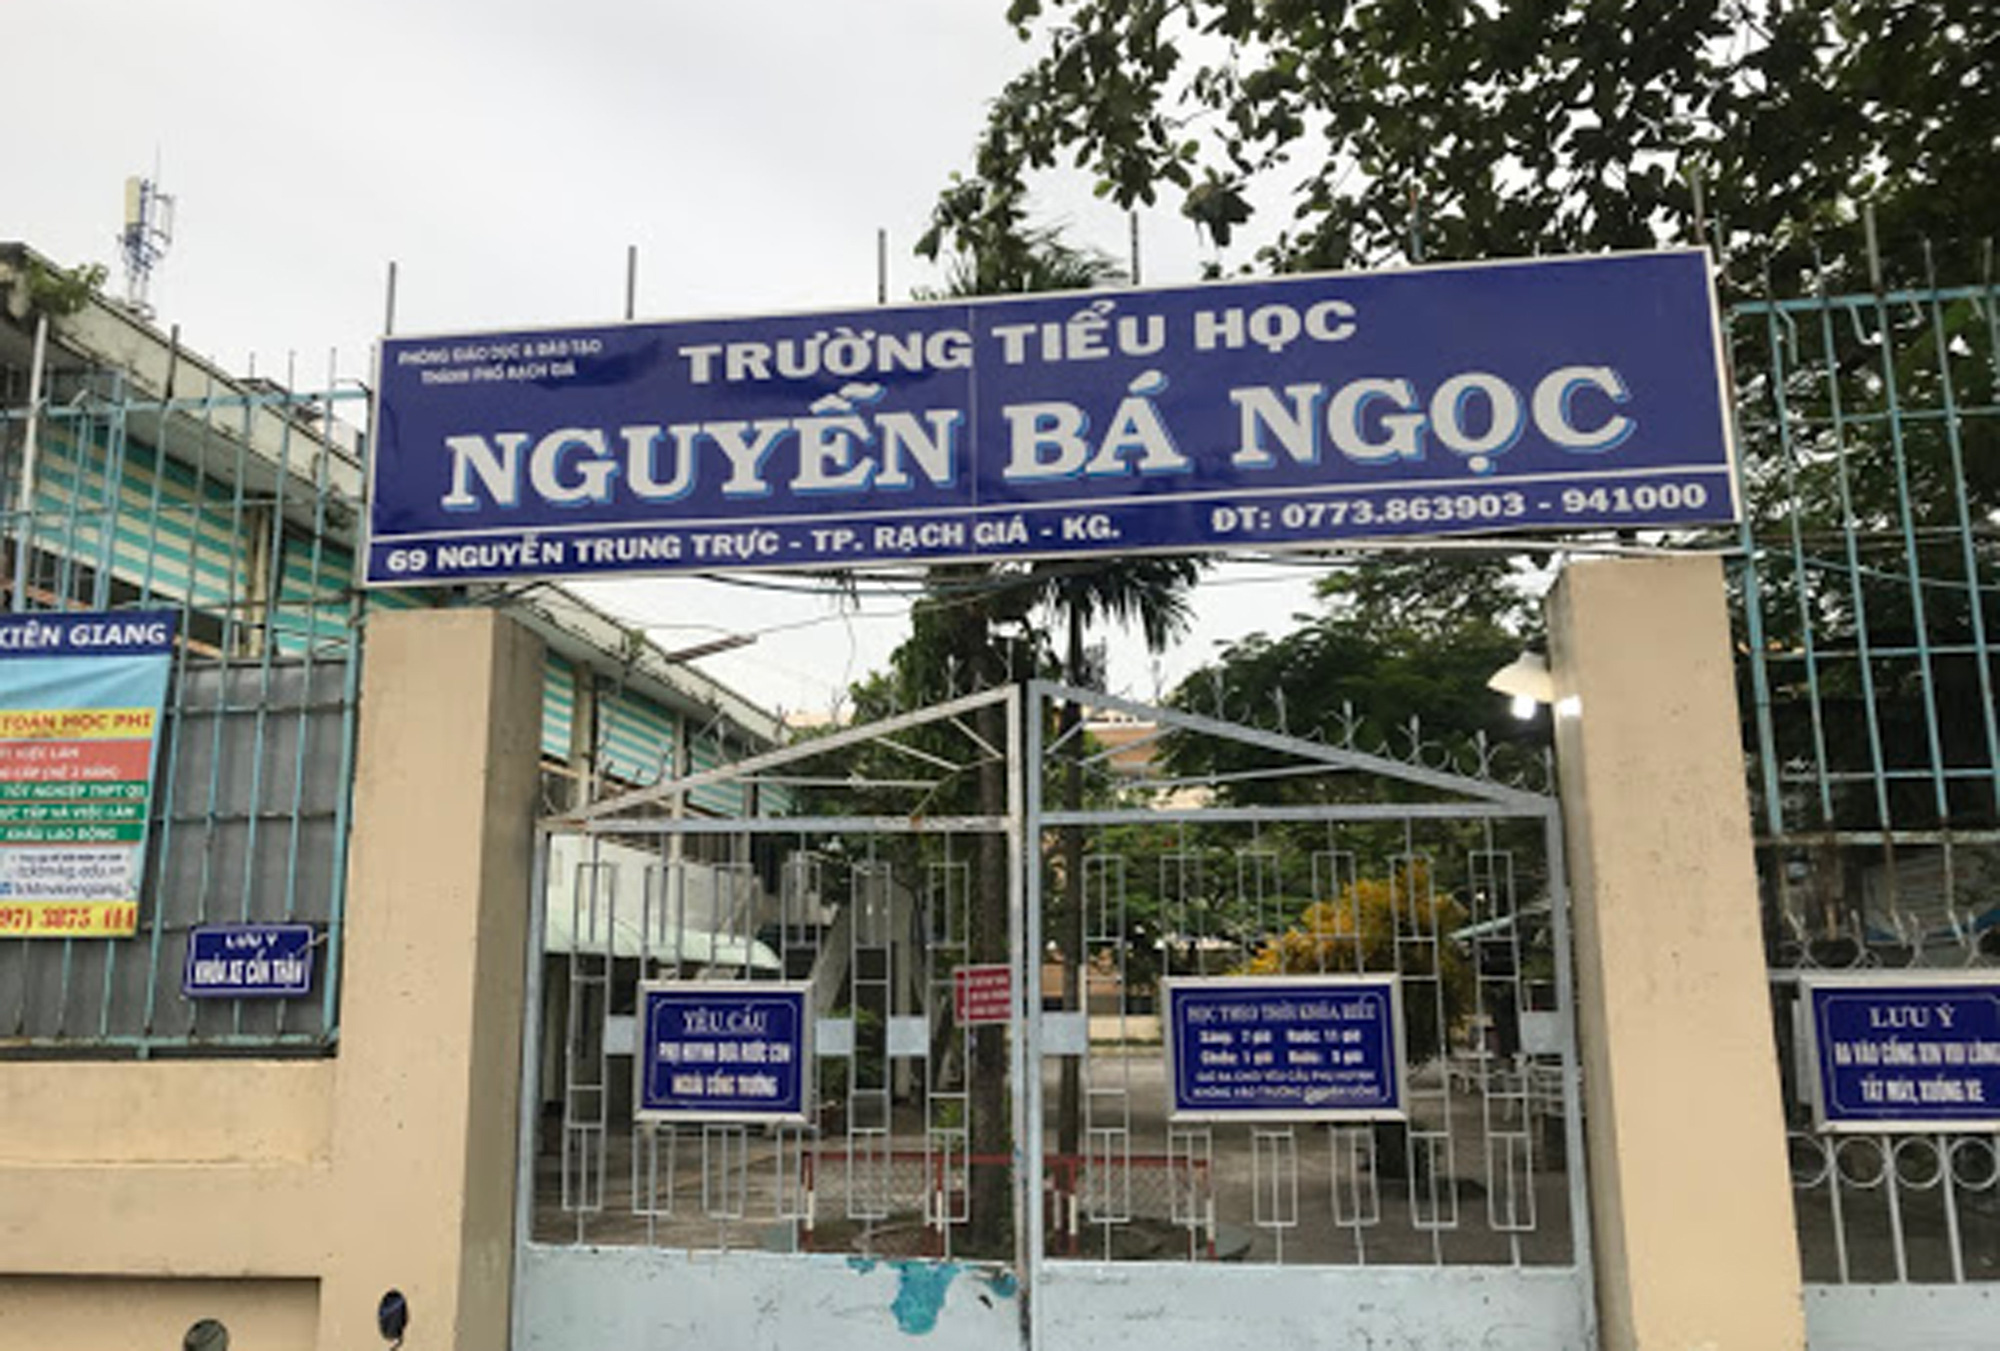 School principal arrested for allegedly misappropriating student fees in Vietnam